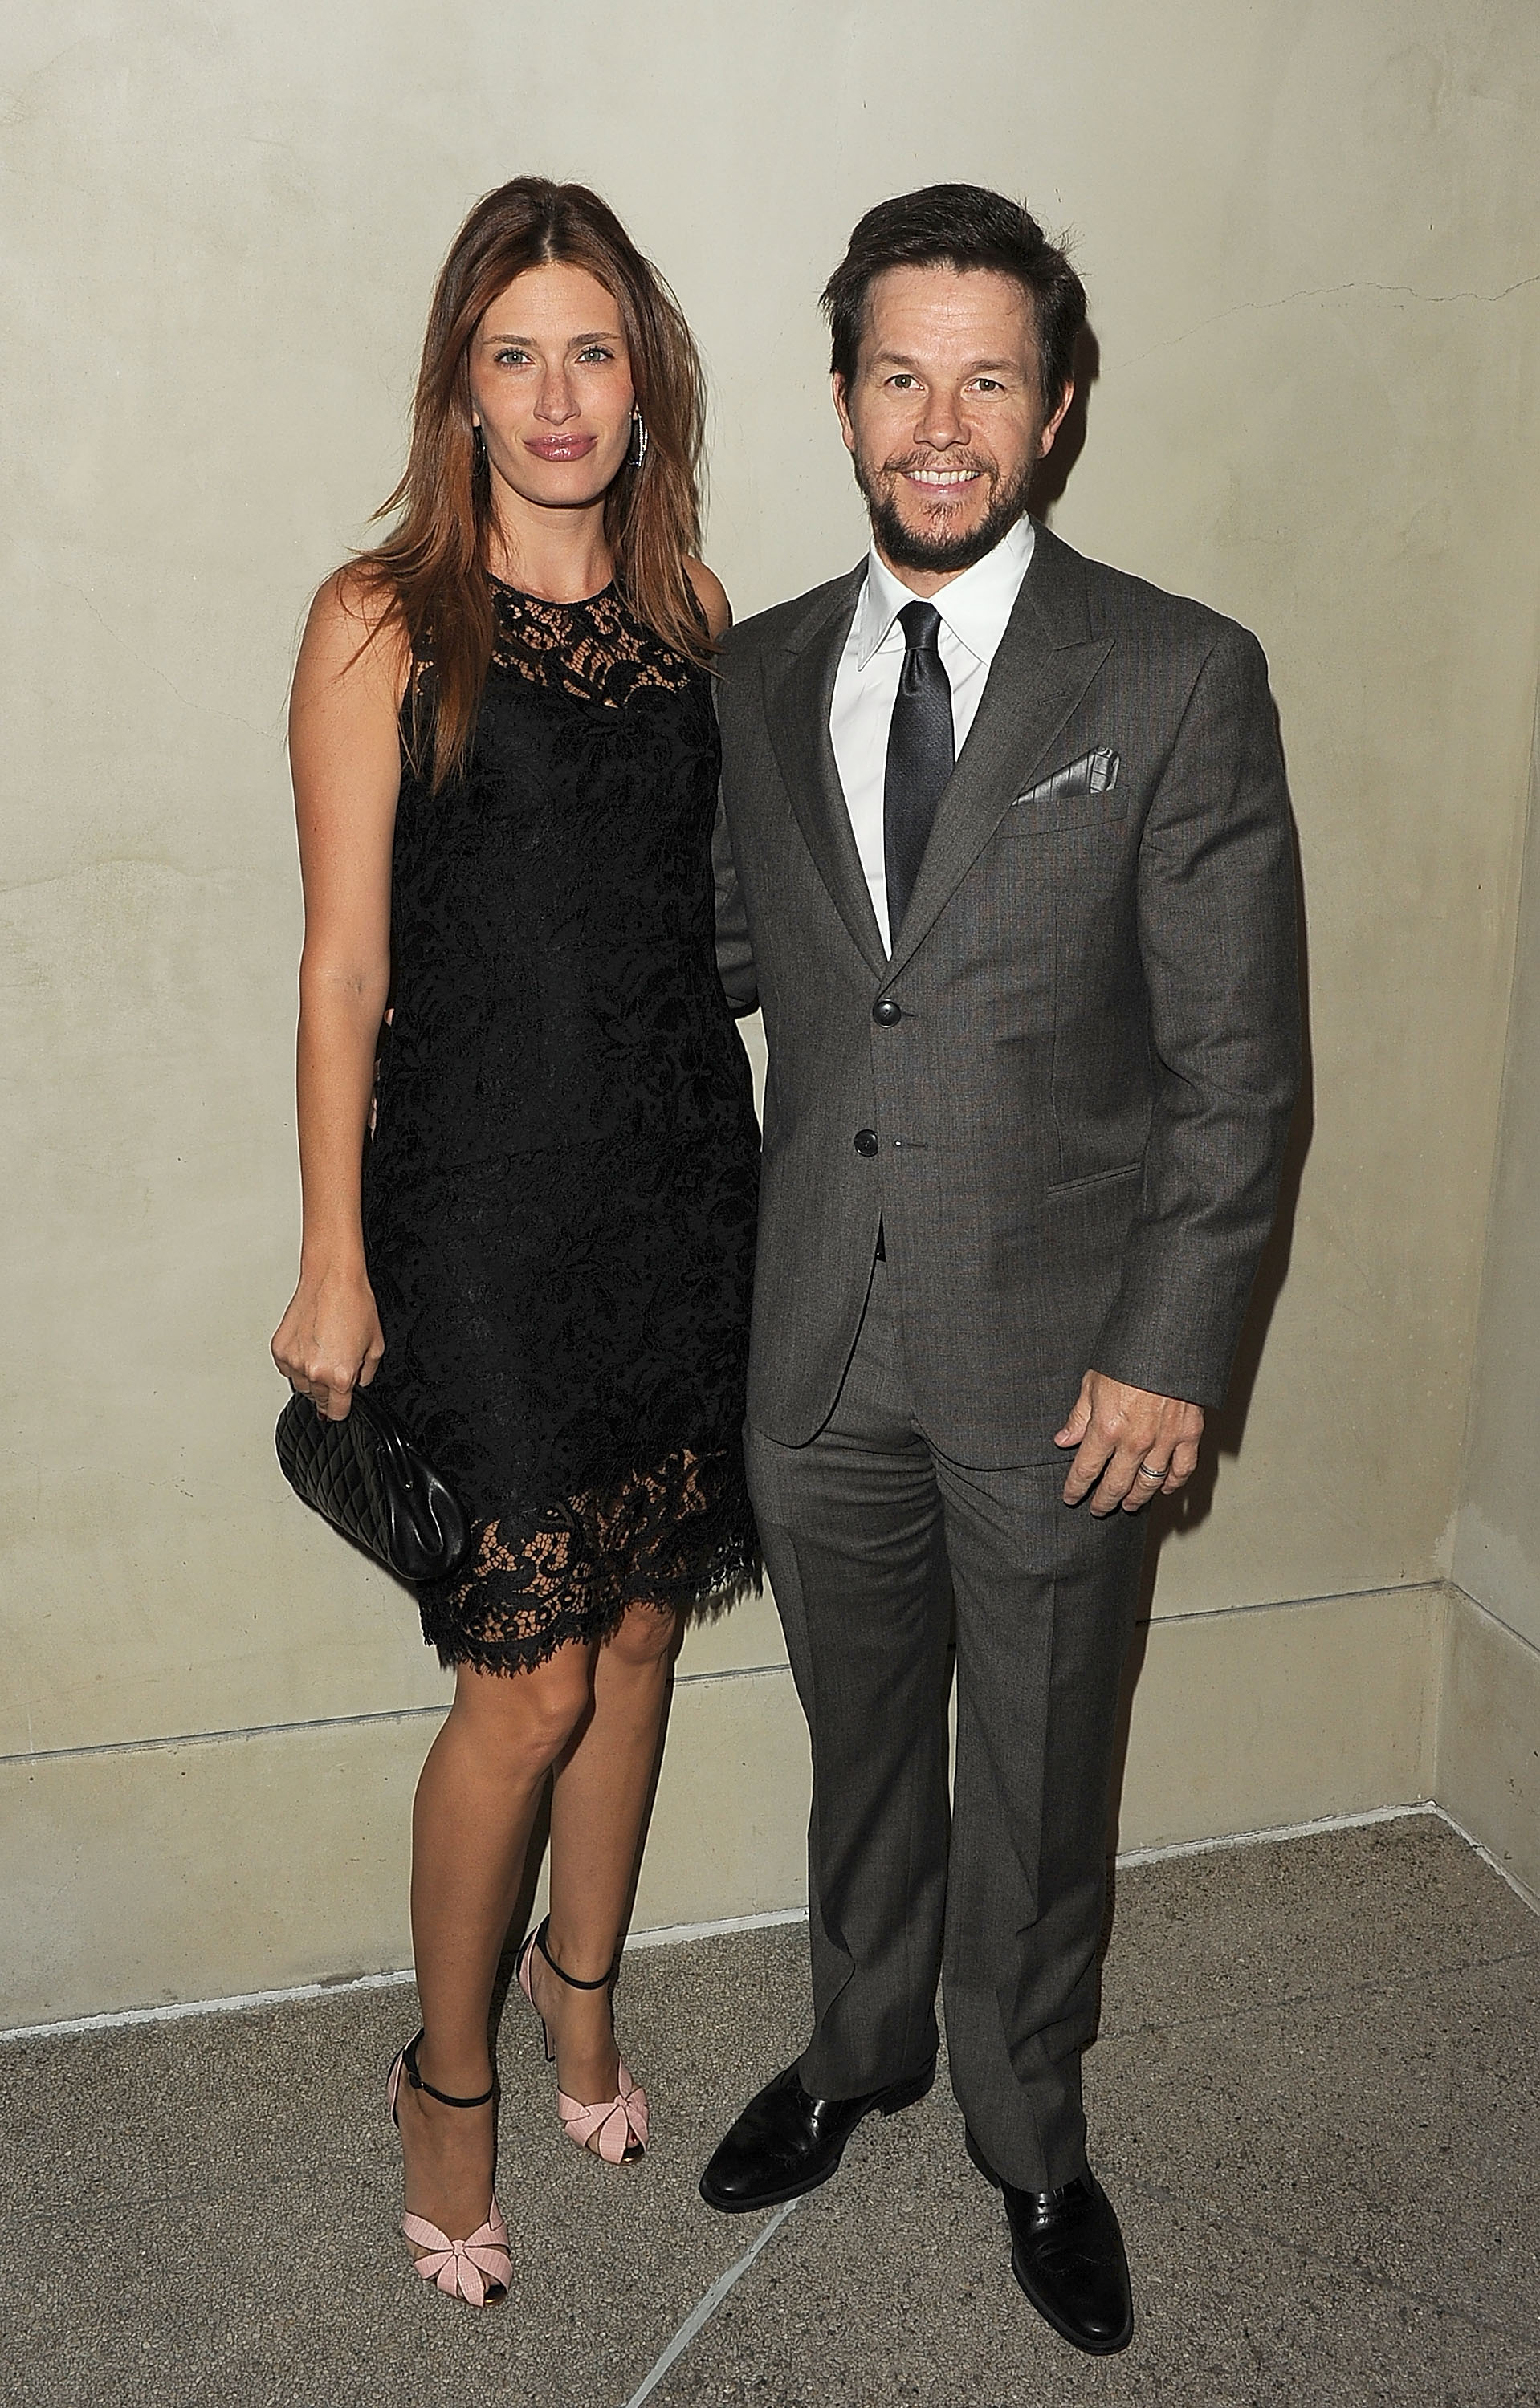 Mark Wahlberg and Rhea Durham dressed to the nines for an Armani and Vanity Fair event.